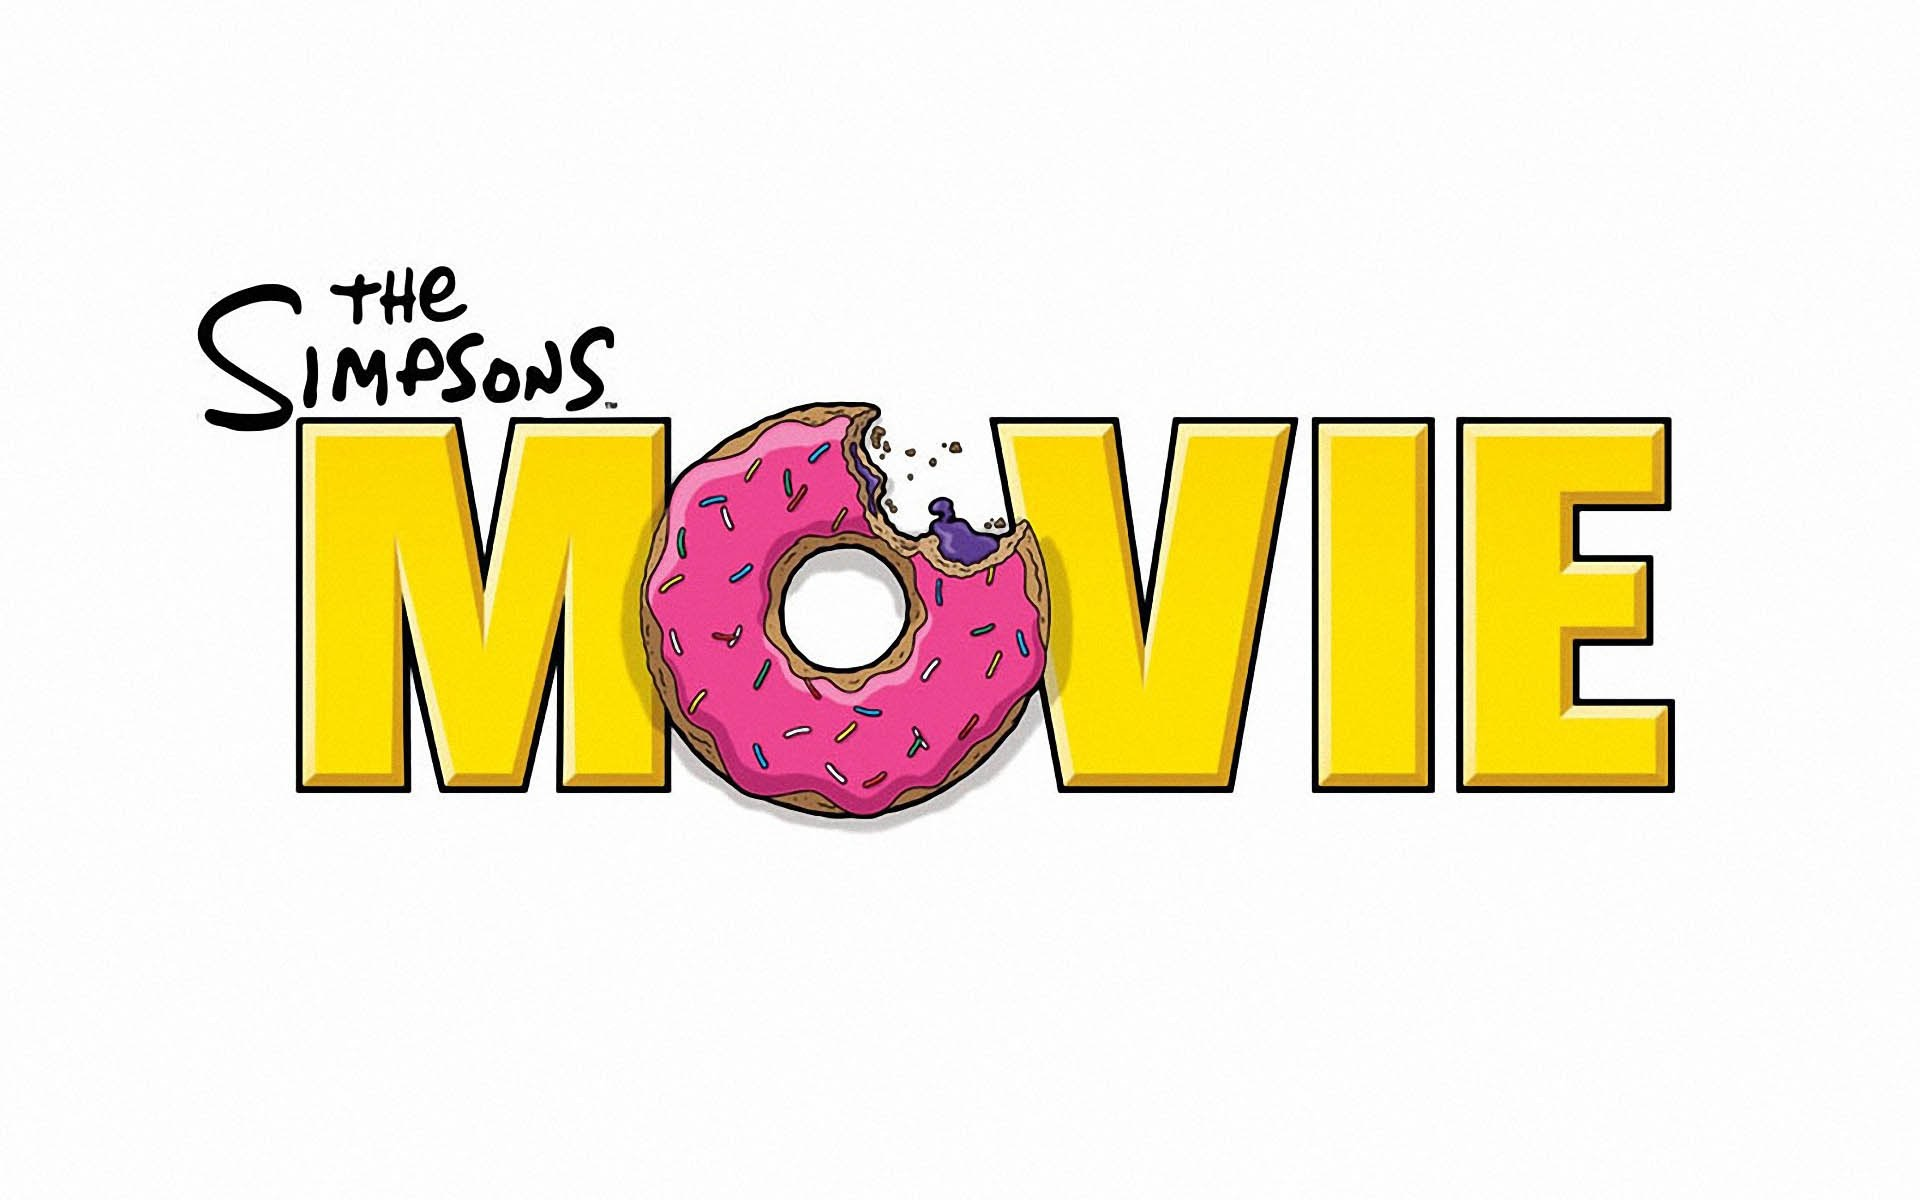 u0026quot;The Simpsons Movieu0026quot; [[Fanmade]] - YouTube